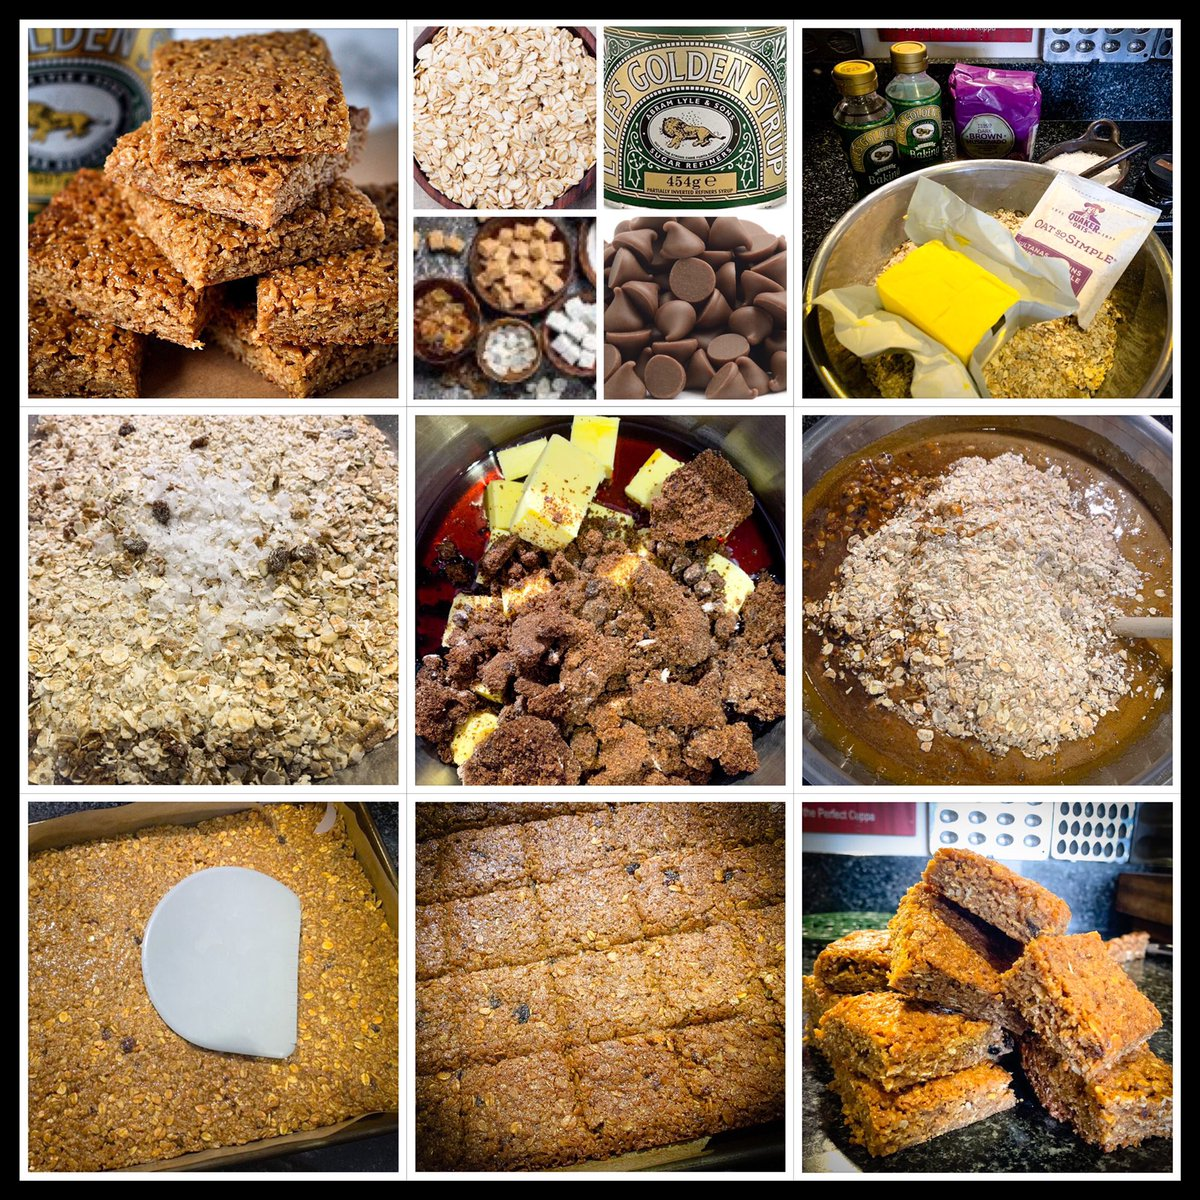 Over on @PrettySweetLon Facebook Page and @Claire_Clark Instagram page you will find #claireclark's #masterclass to the classic #flapjack! Get baking! #COVID19 #Lockdownextention #sundaybaking https://t.co/6GDUY89XS8